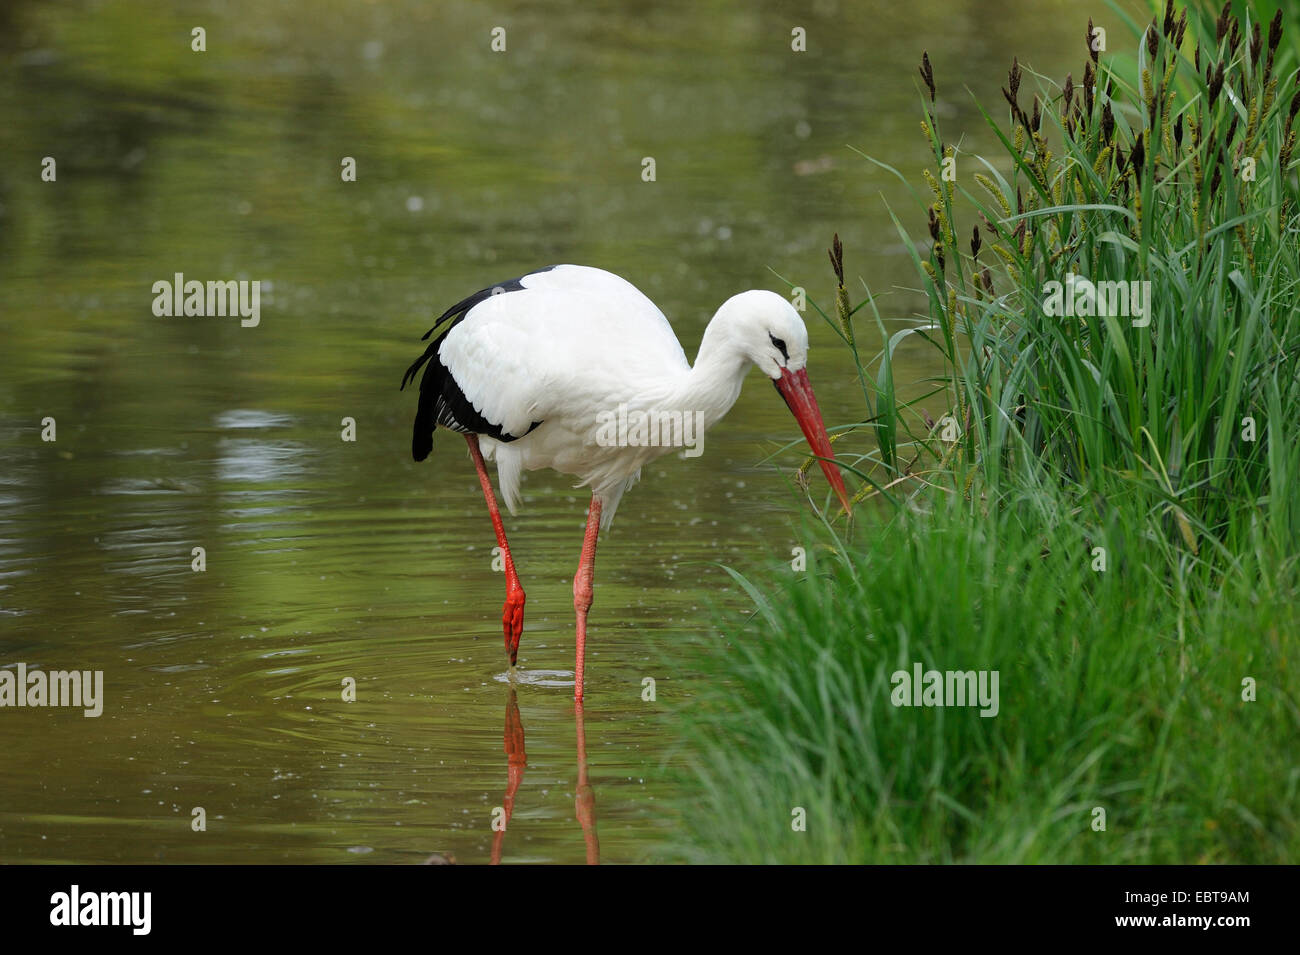 white stork (Ciconia ciconia), looking for food at a water shore, Germany - Stock Image